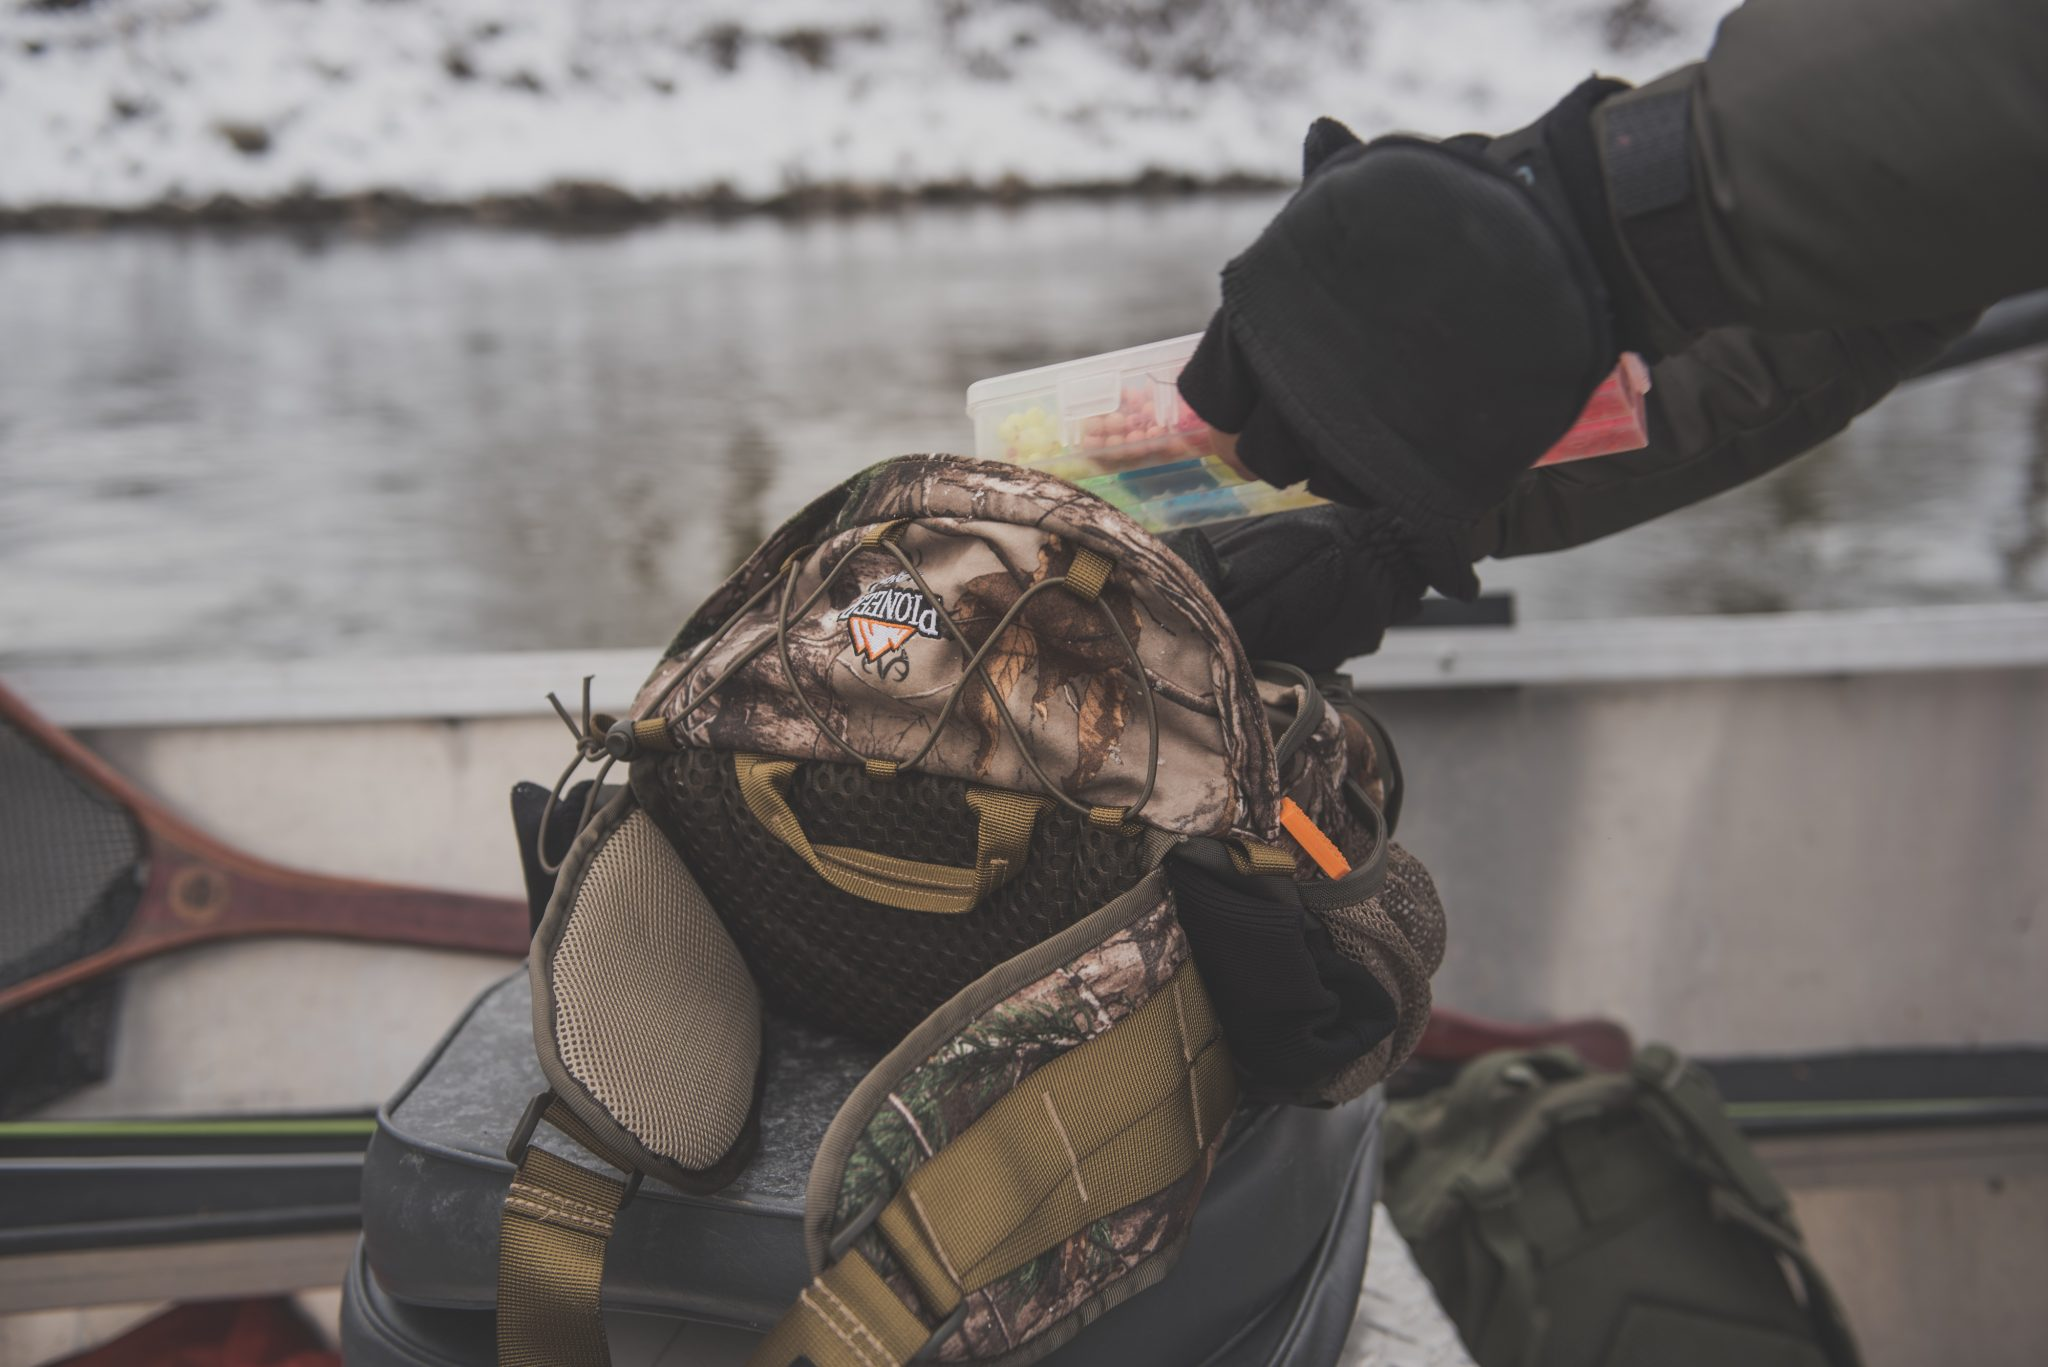 Michigan resident, and Fishing Guide, Brandyn Thorsen, uses the Pioneer 400RT series waist pack to hold his collection of Trout beads. Fishing beads for Winter Steelhead is highly effective, as the bead resembles a single fish egg.